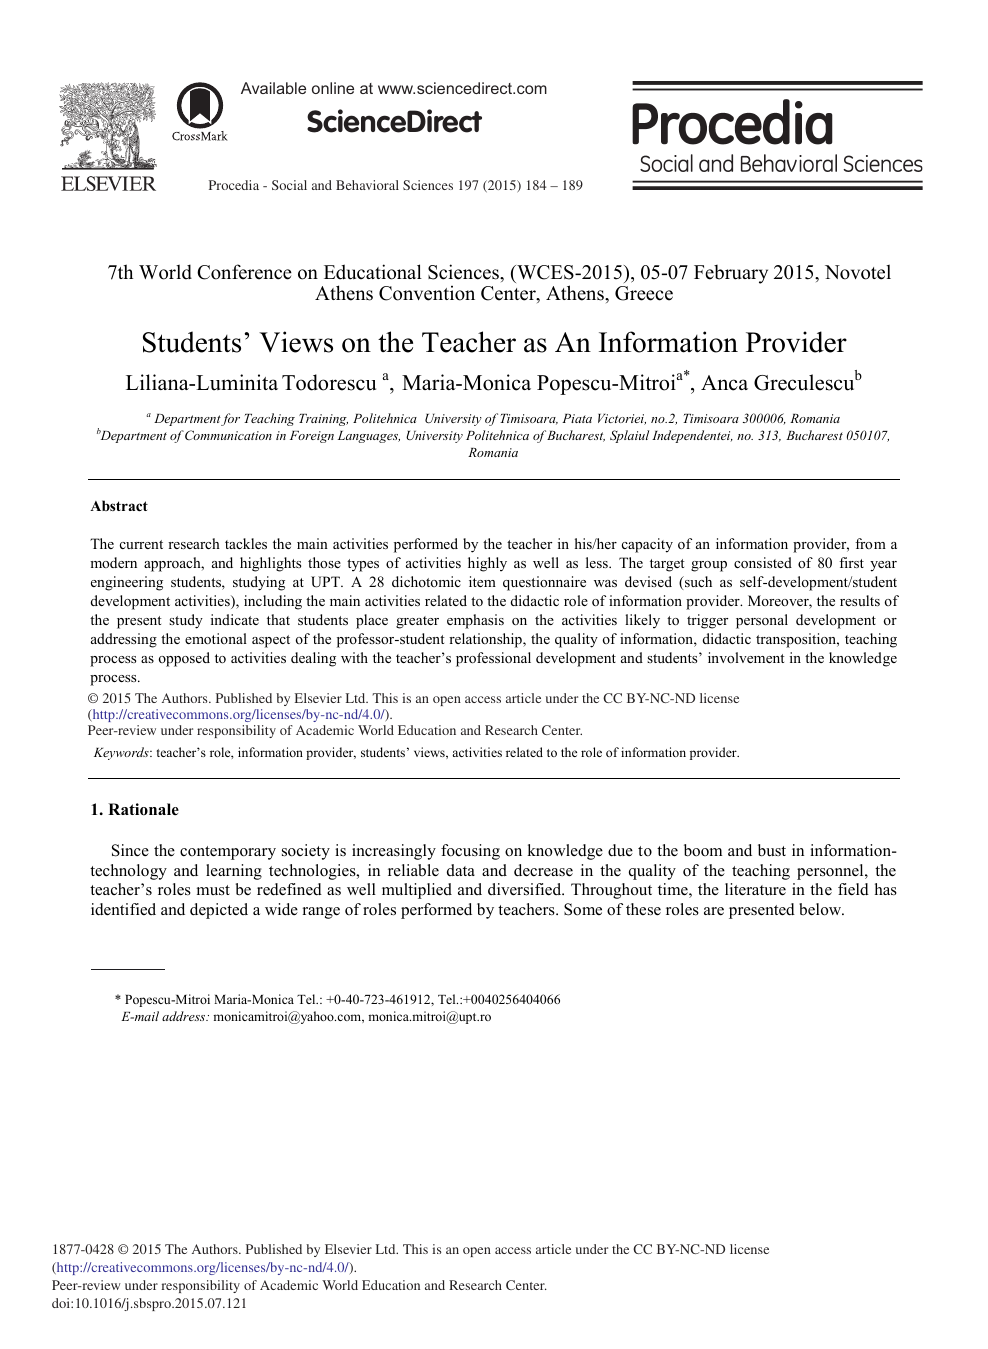 Students' Views on the Teacher as An Information Provider